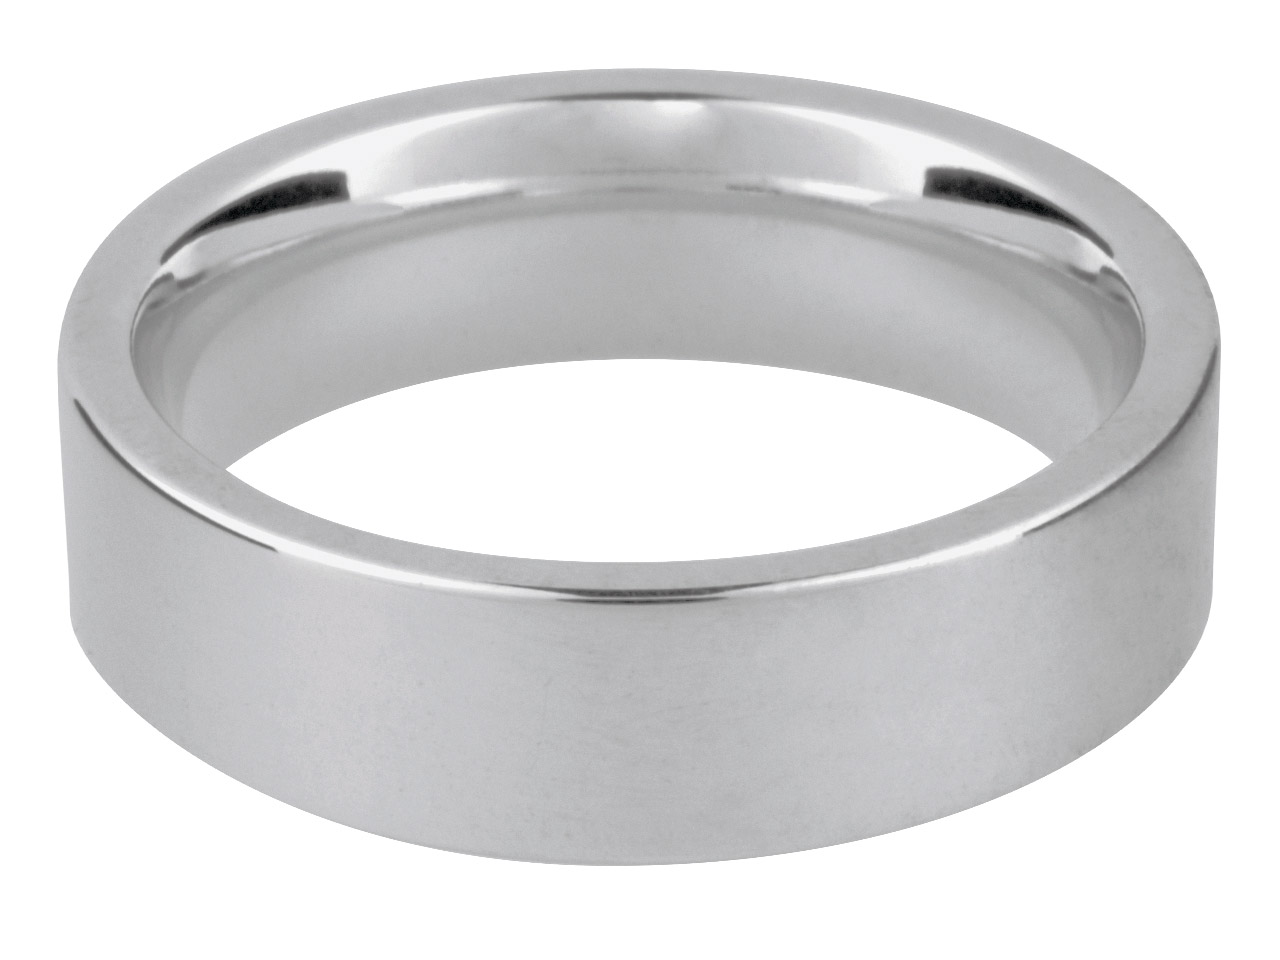 Platinum Easy Fit Wedding Ring     4.0mm T 10.7gms Heavy Weight       Hallmarked Wall Thickness 1.98mm